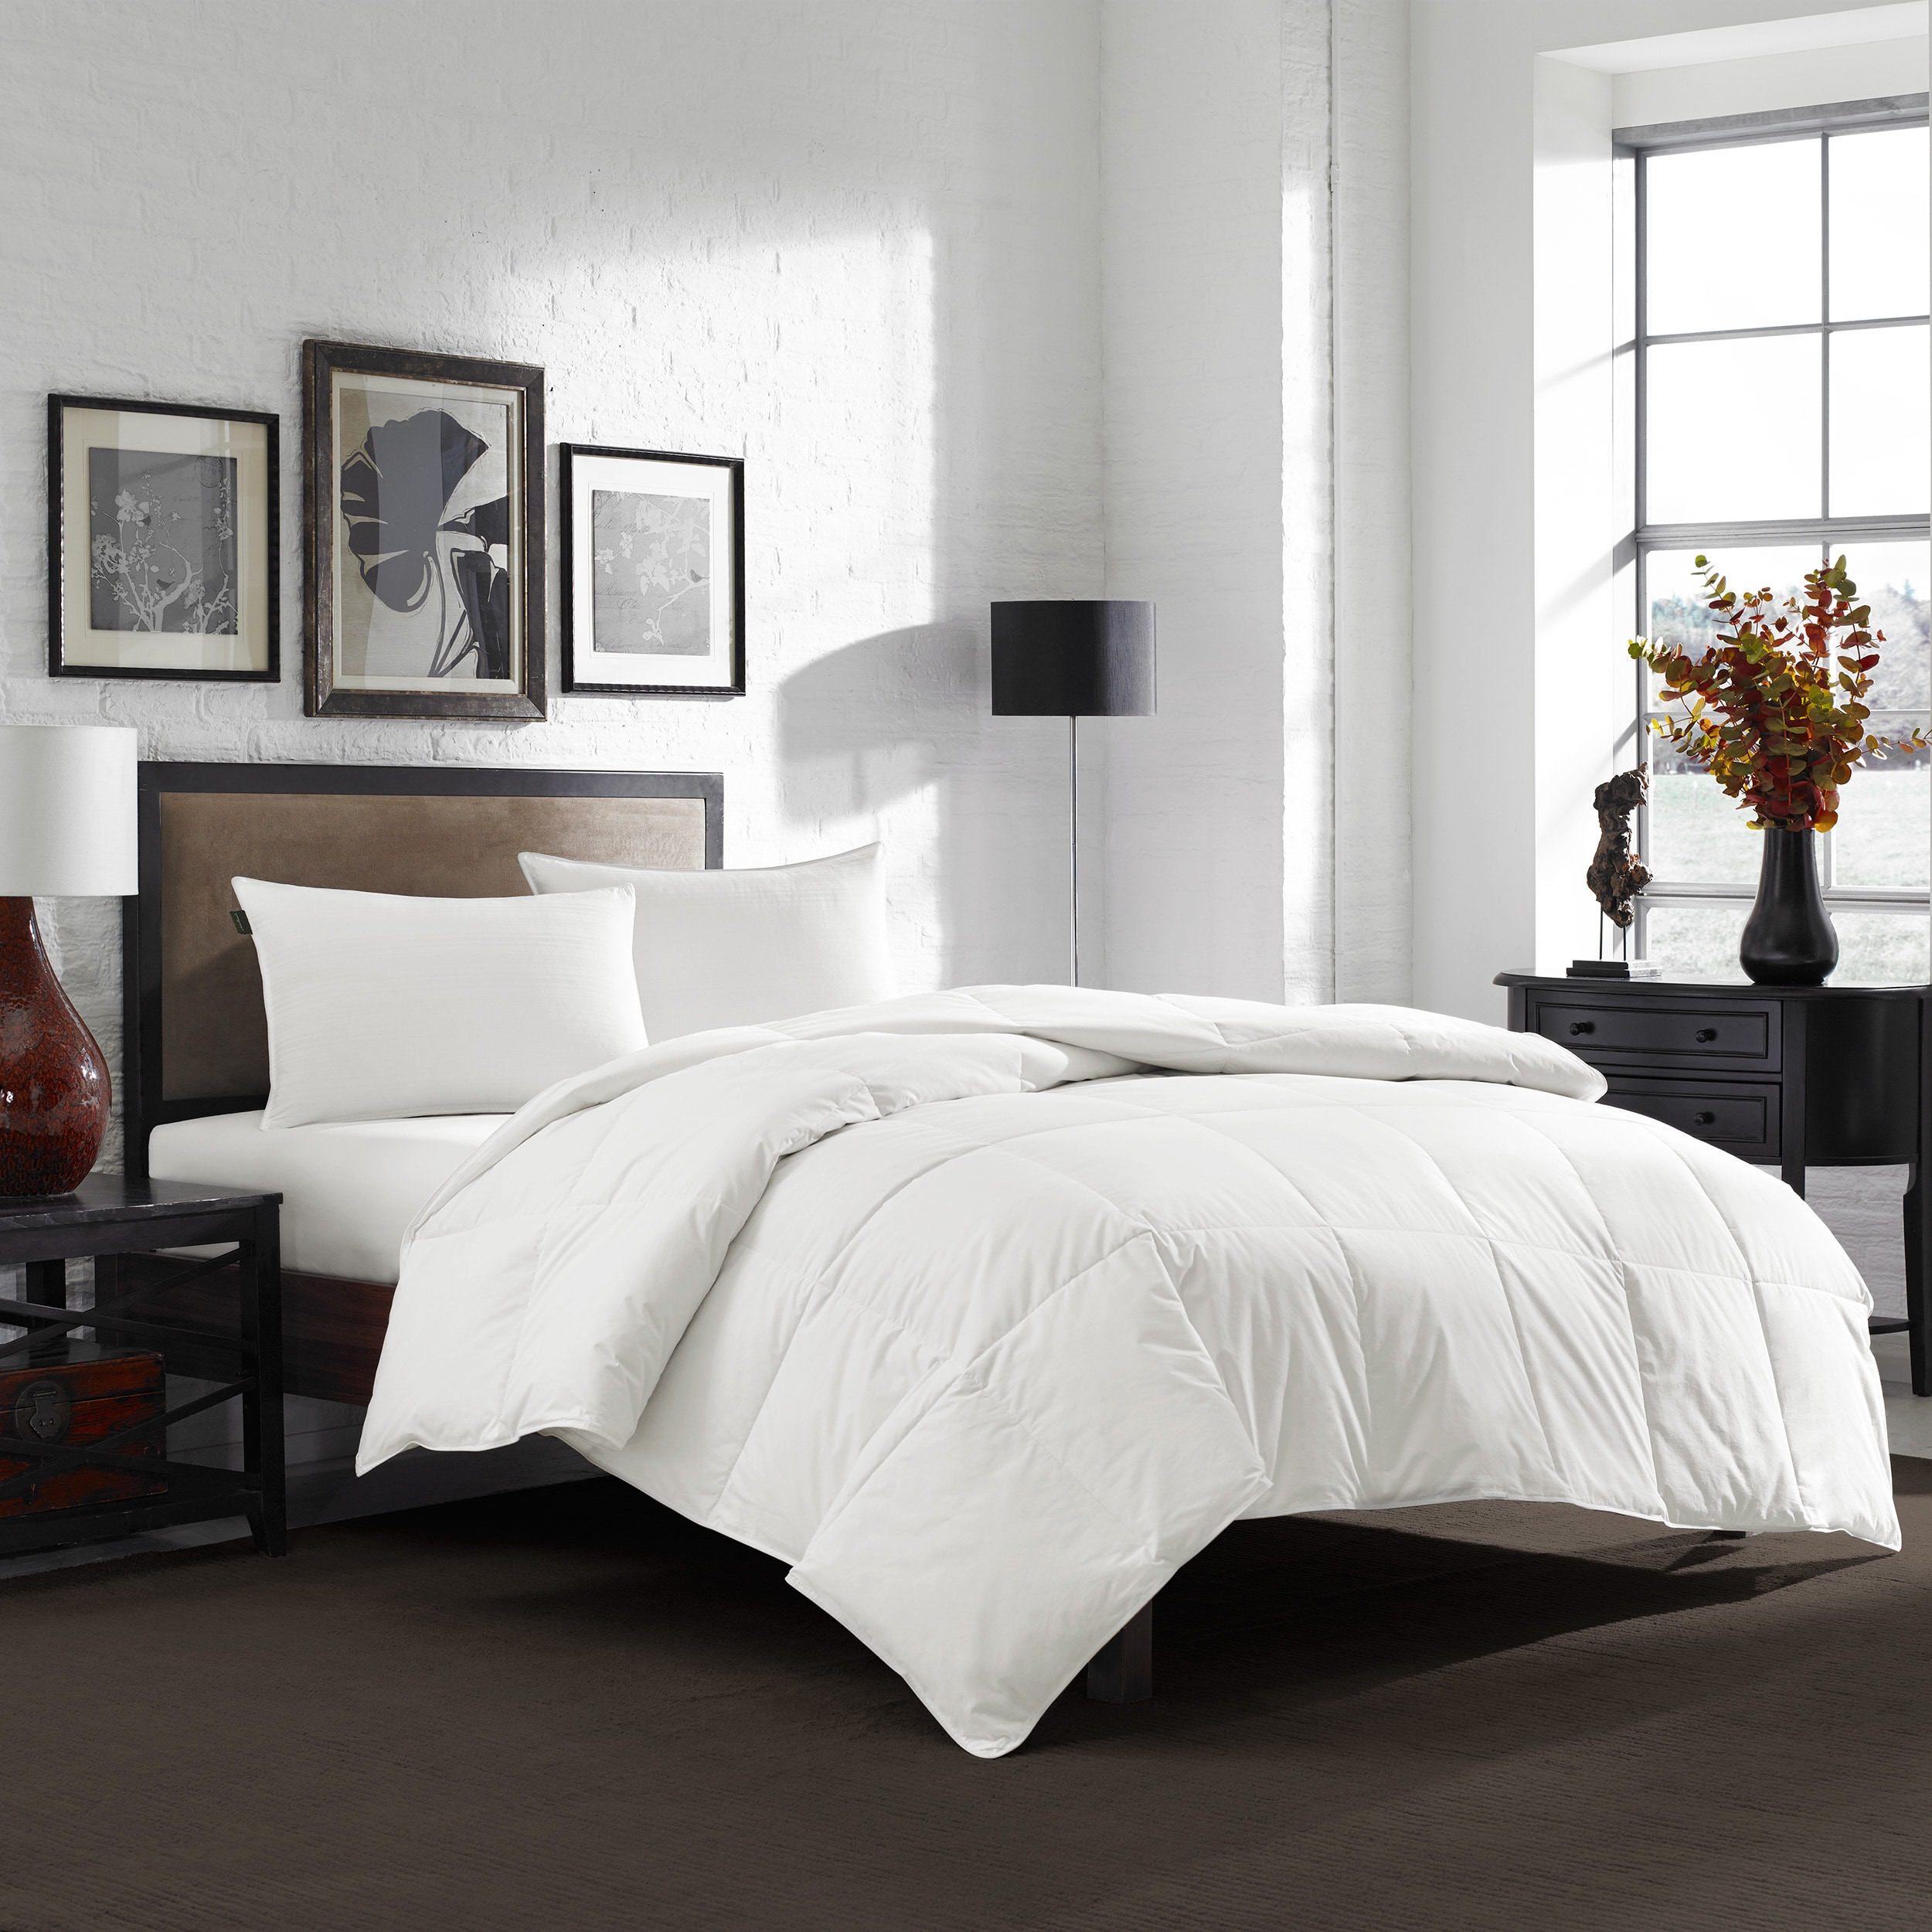 comforters enchanting to how a idea of comforter at your intended buy down elegant choosing applied bedroom types for home